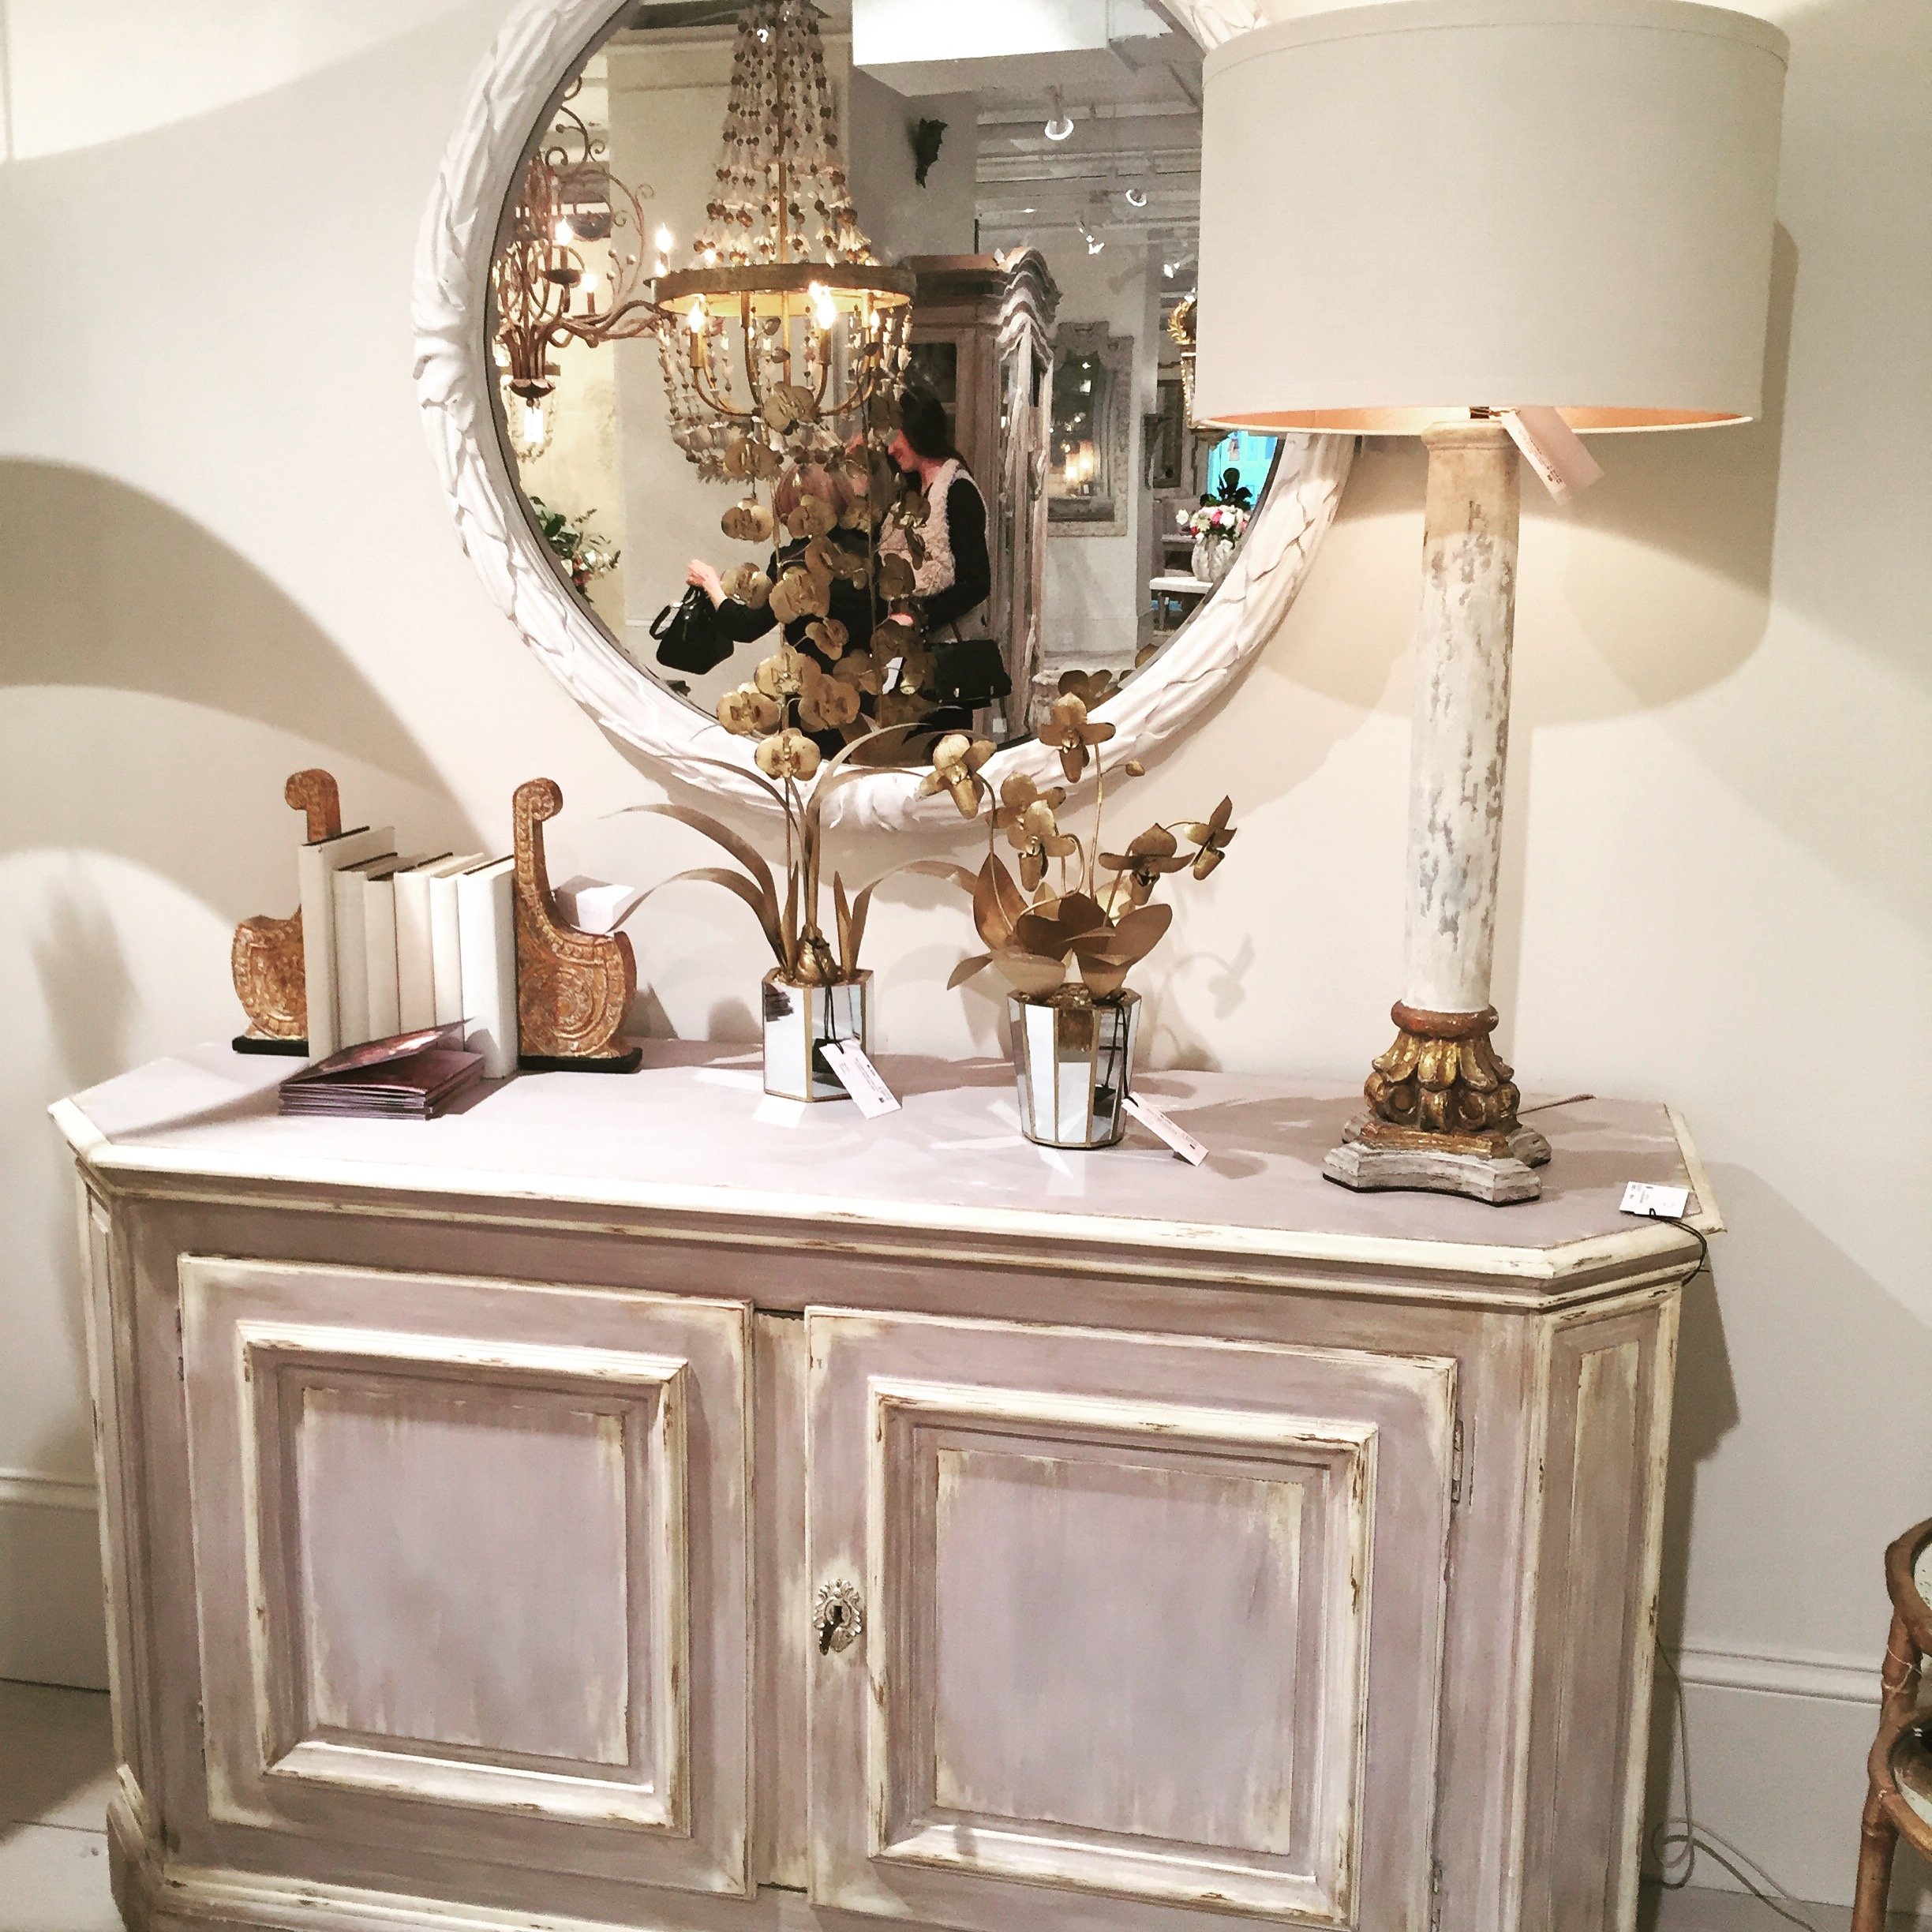 From the Scandinavian patina on the chest to the French chandelier reflected in the mirror, I love everything in this vignette- mixed metals, old and new connected by color, patina and lines.